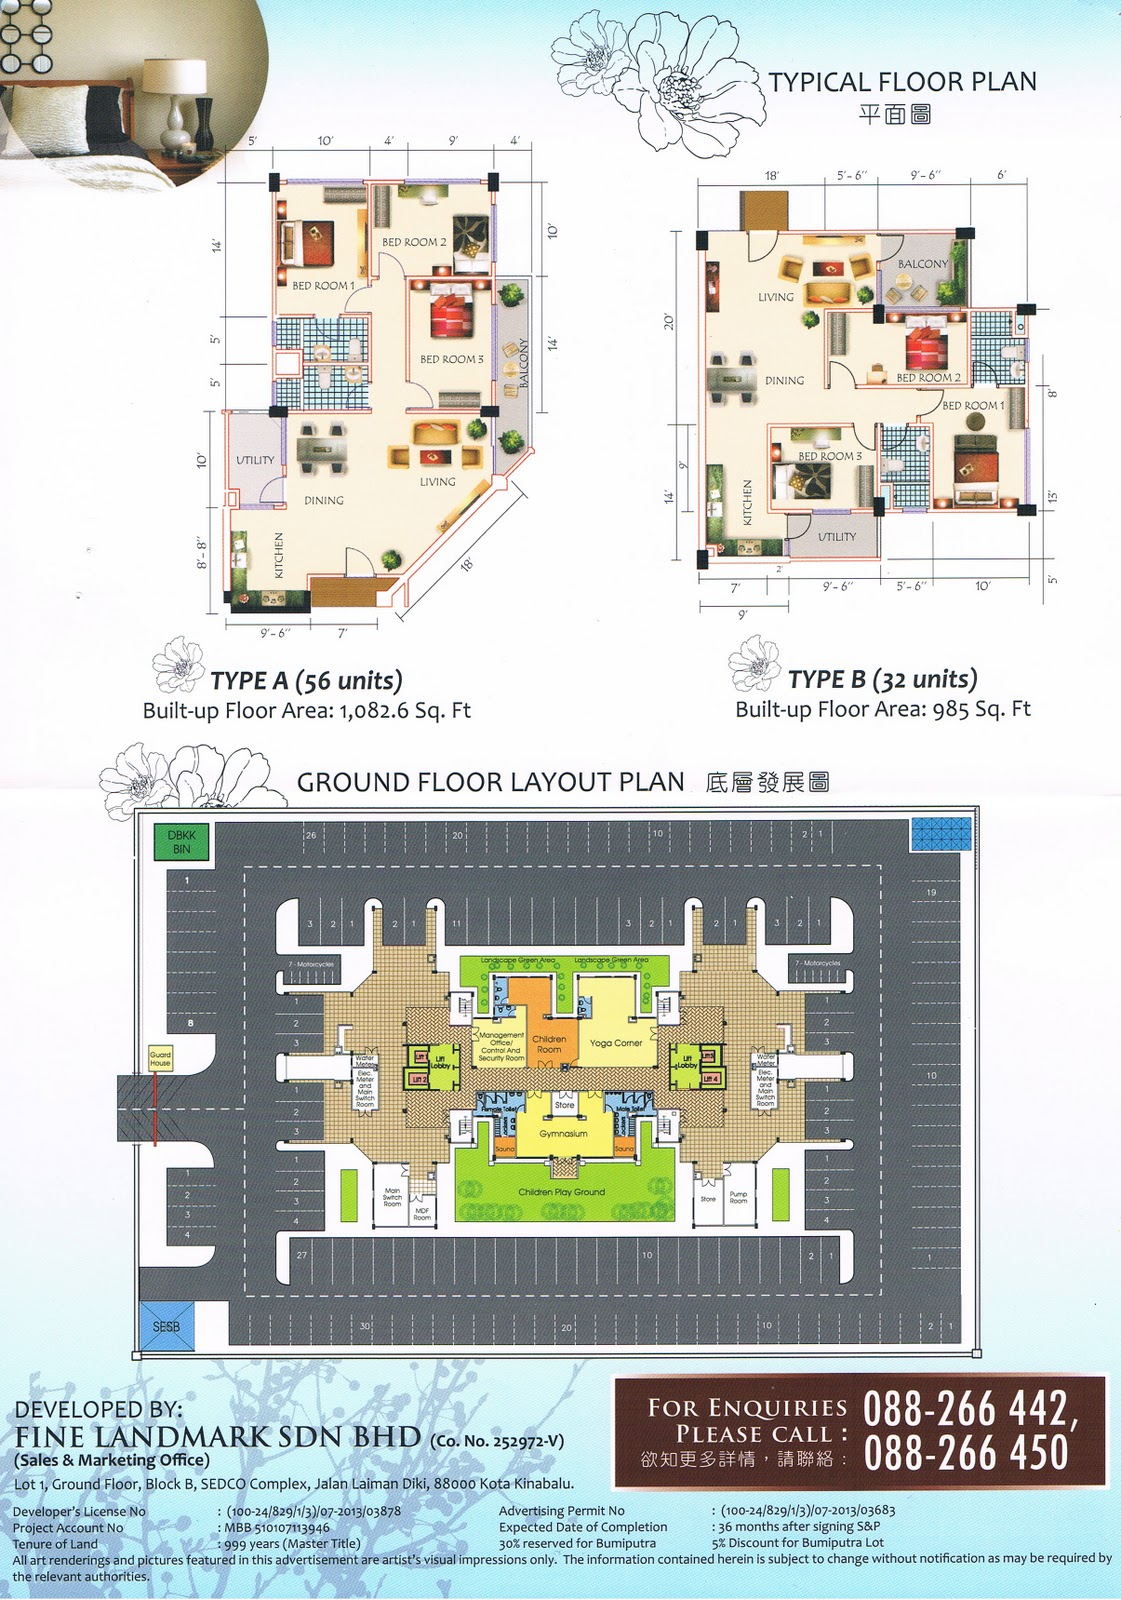 Apartment Floor Layout Plans